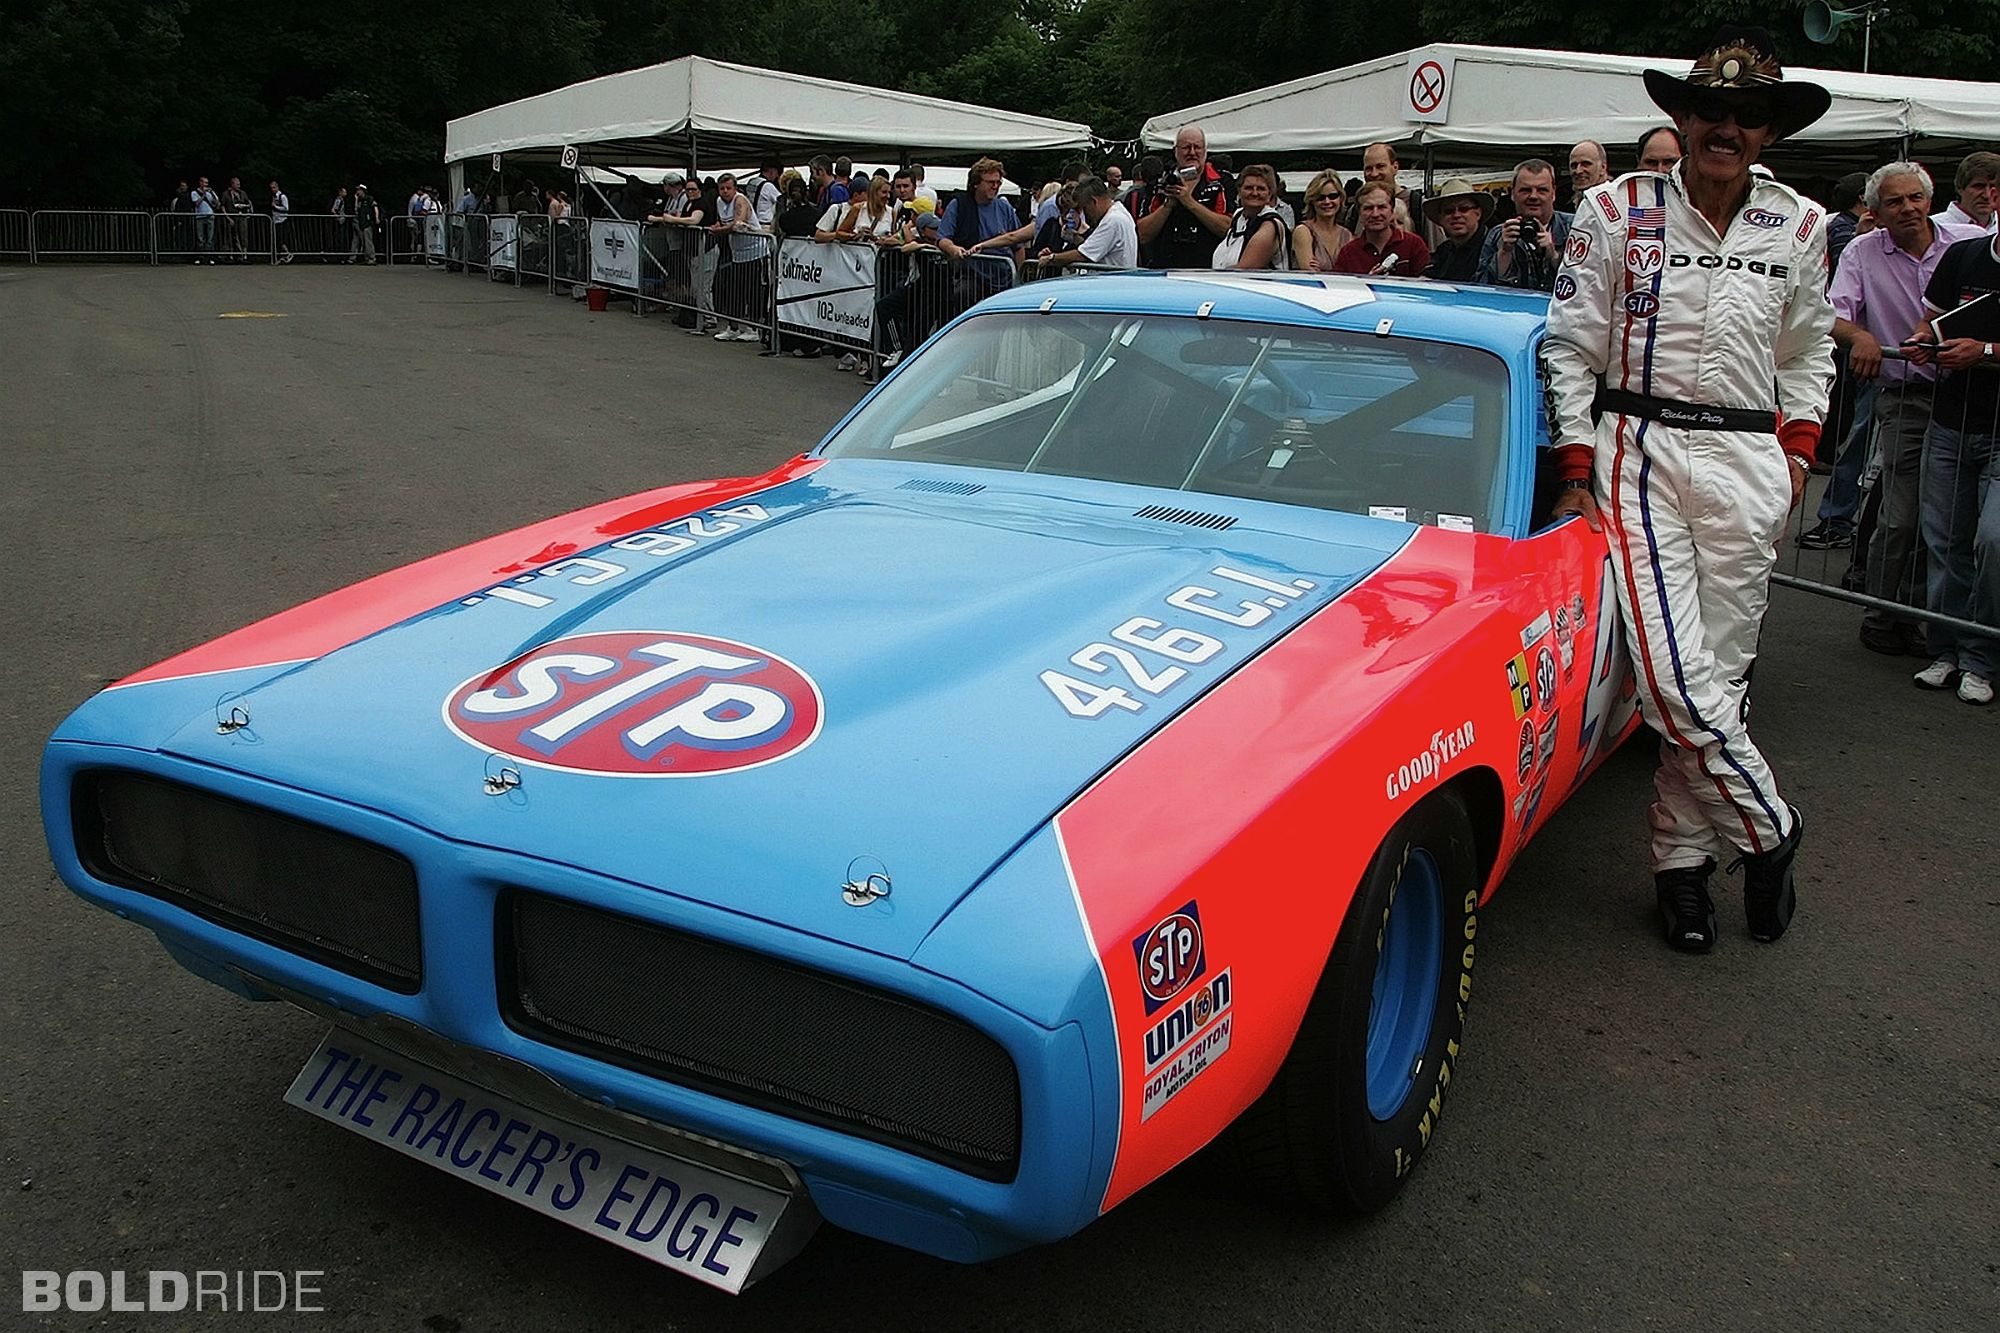 Dodge Charger Nascar Race Car Classic Race Cars Pinterest